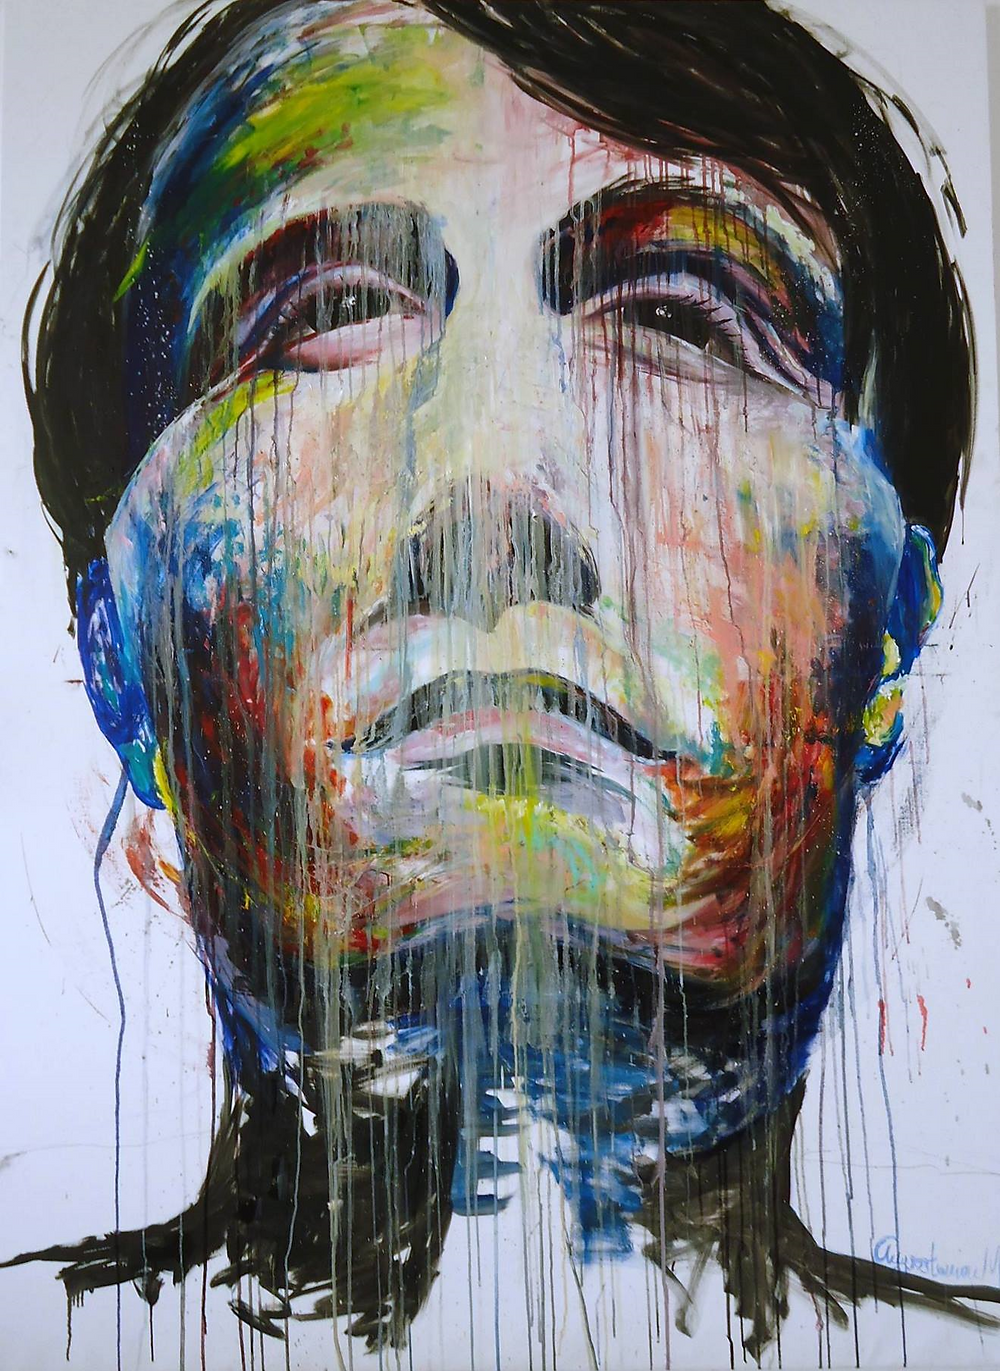 Experiment in oil oils on 190x160 cm canvas